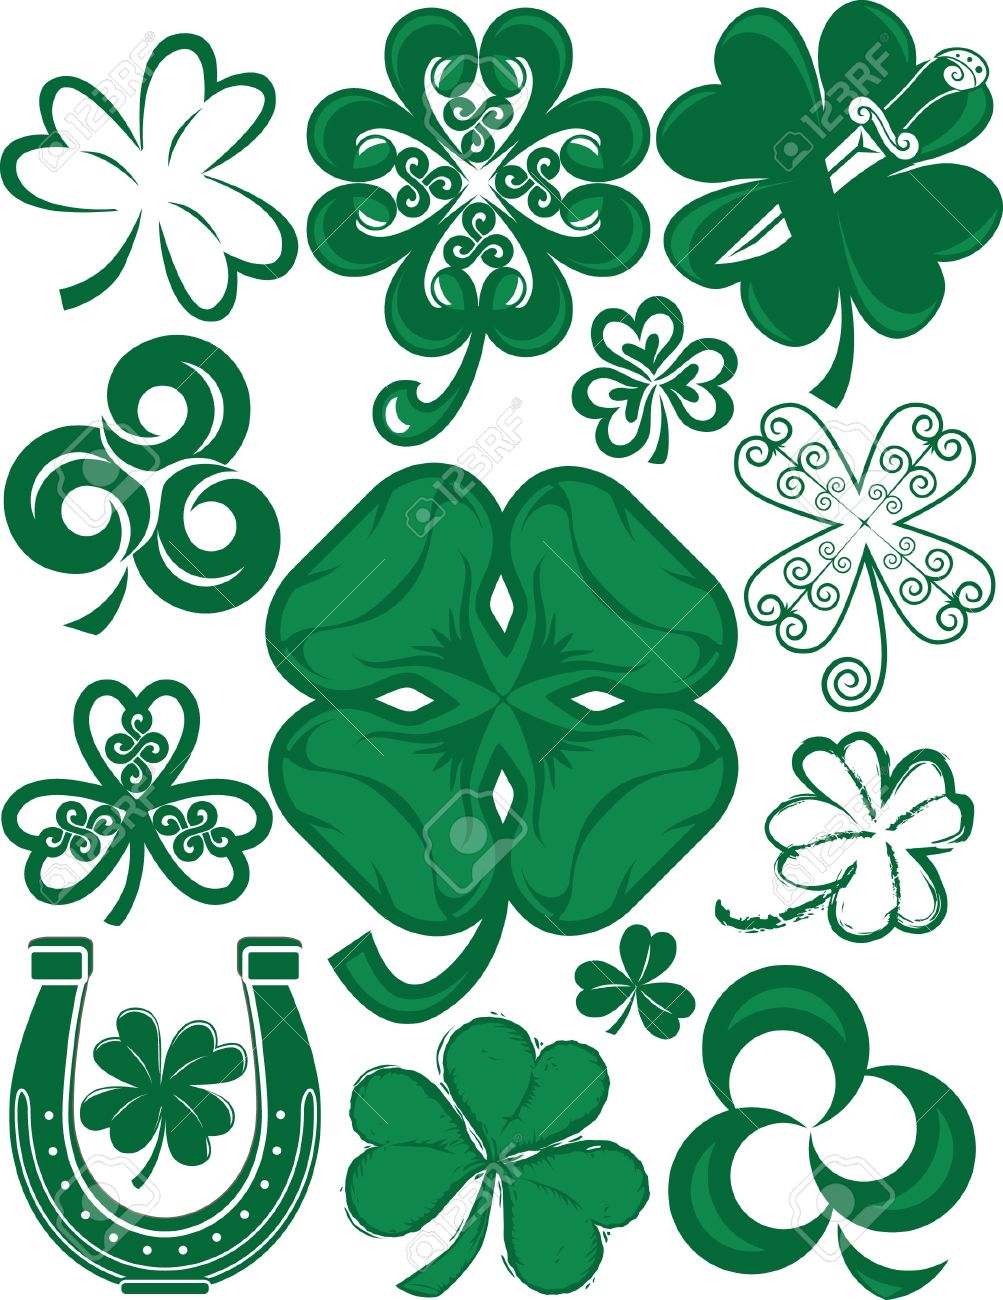 Shamrock Collection Stock Vector - 13232391